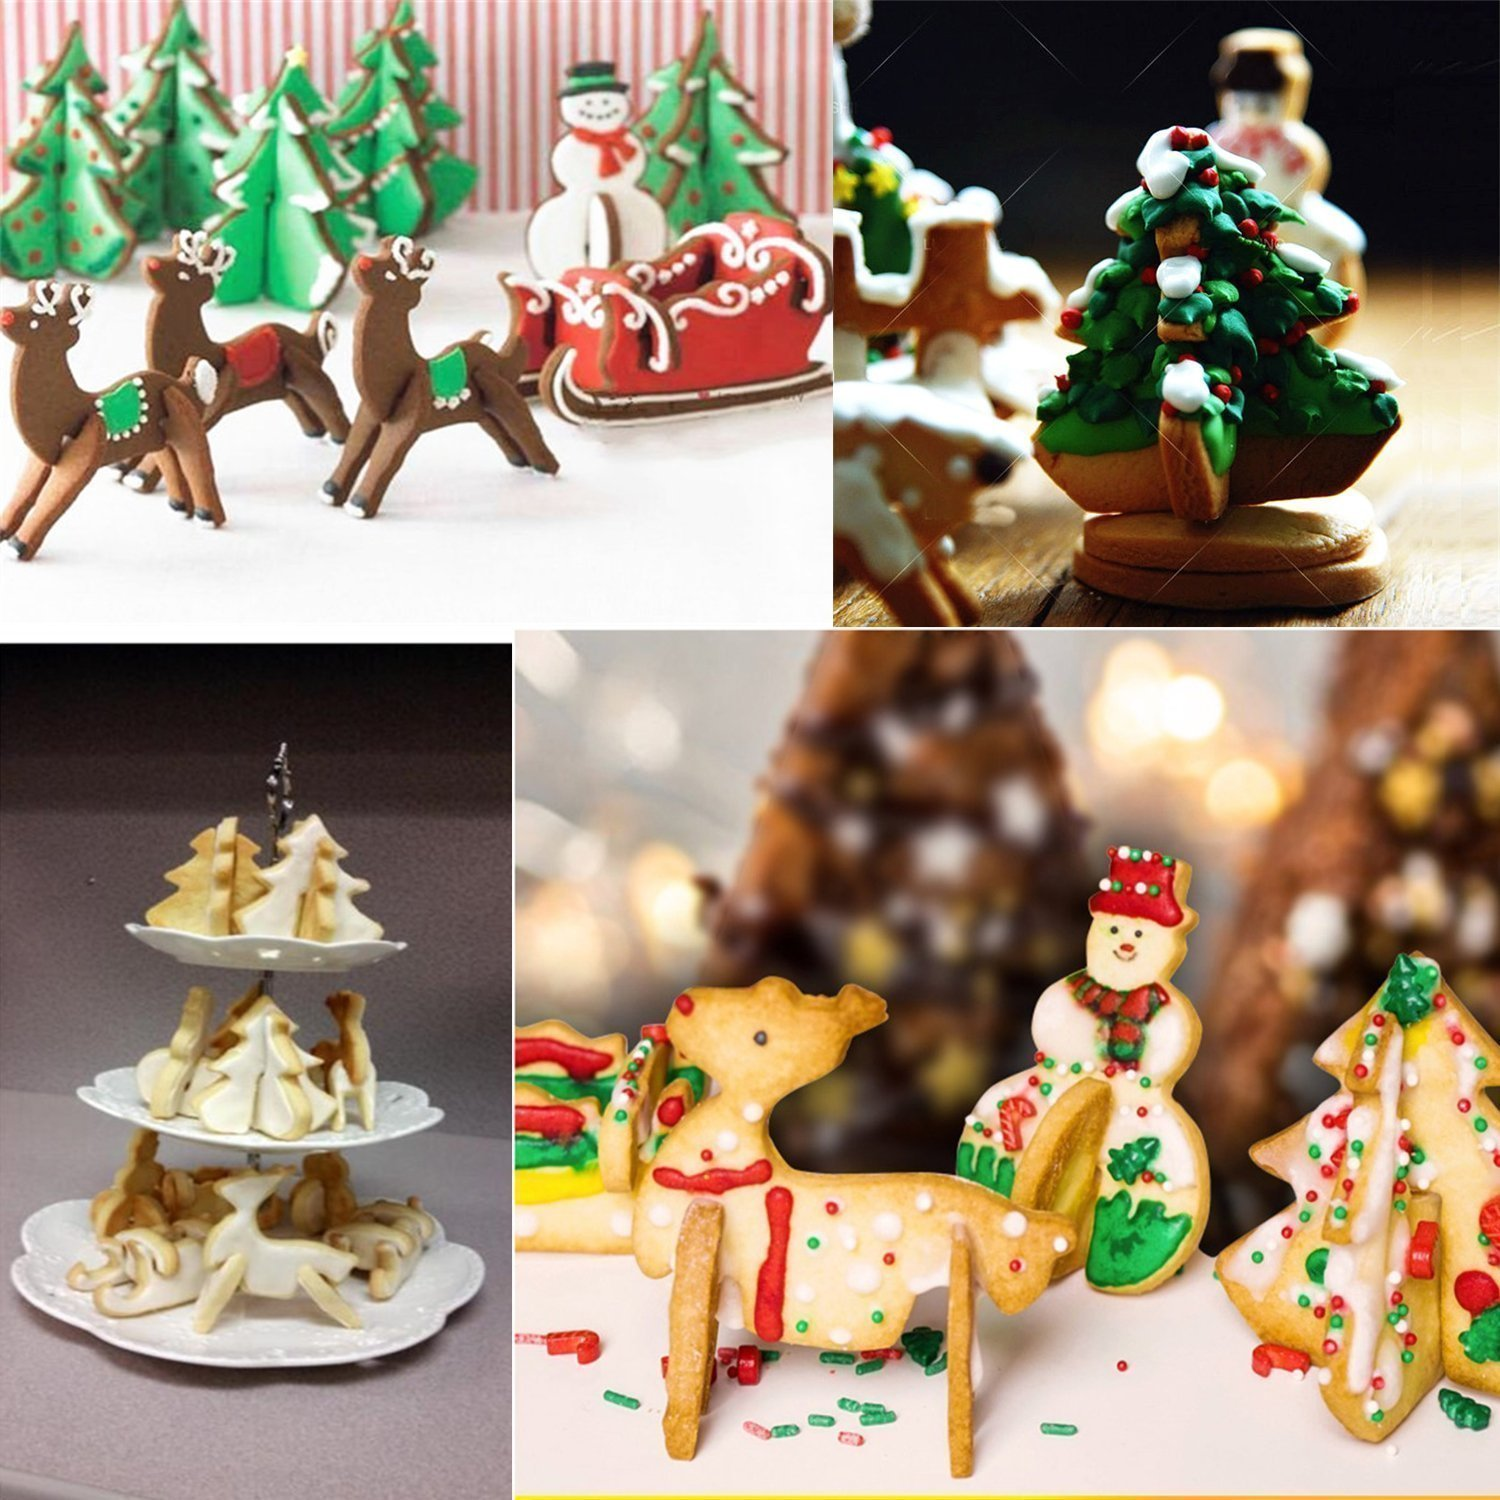 Christmas/ Holiday Cookie Cutter Set, 8 Pcs DIY 3D Scenario Cookie Cutters Tool Stainless Steel Cutters including Snowman, Chritmas tree, Christmas elk and Sledge